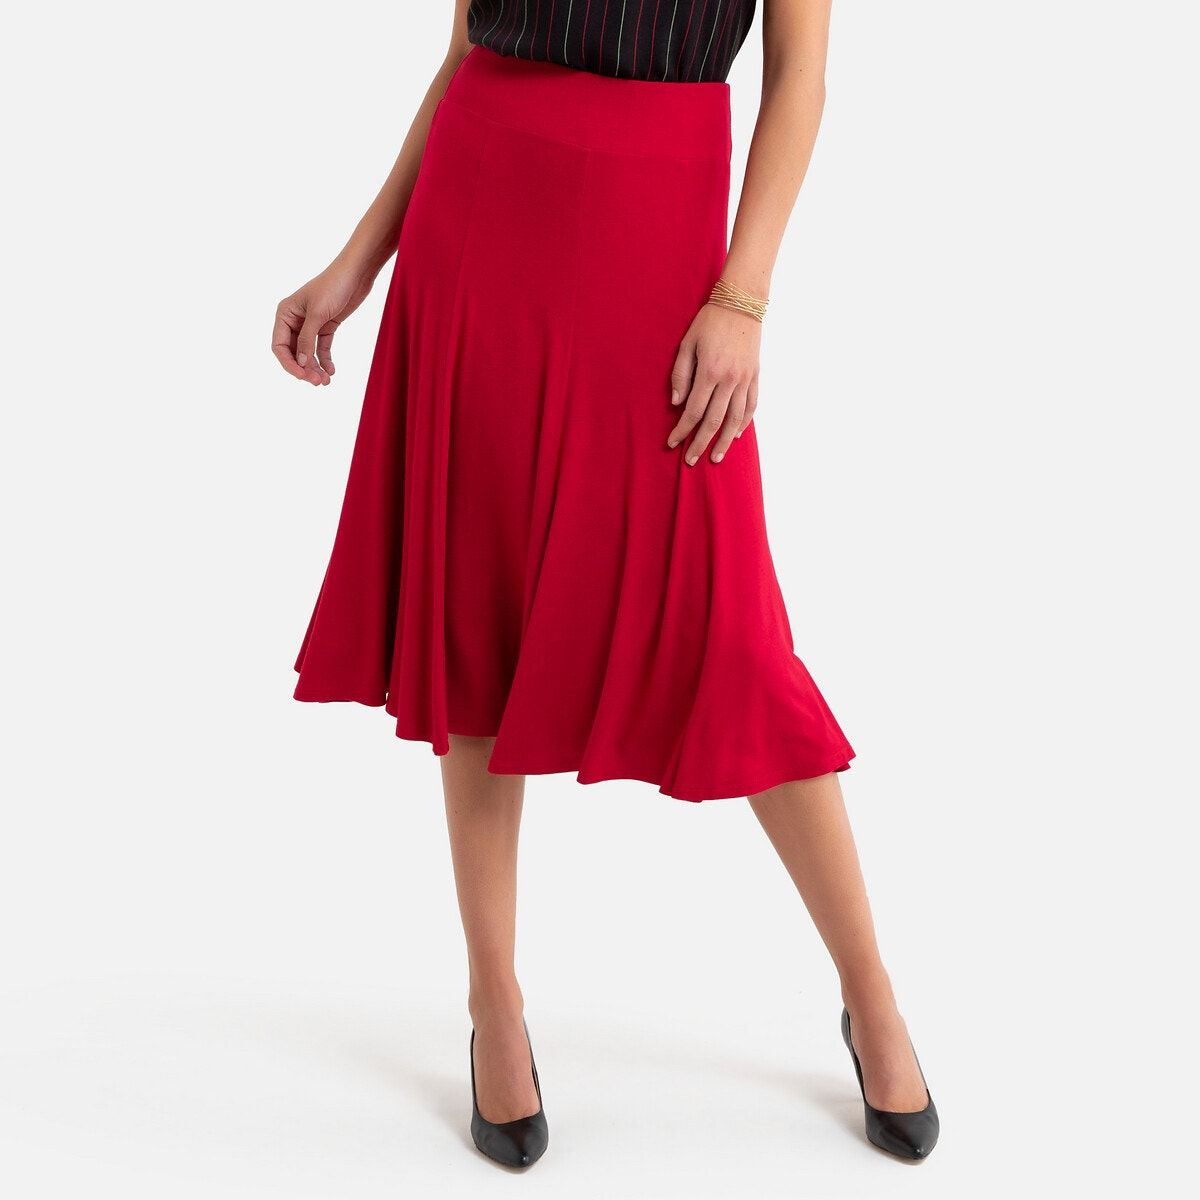 The draping fabric of this full skirt moves with you, and the elasticated waist is very comfortable.product details•shape: full•knee length•length: 70cm for size 10/12 fabric content and care advice•main fabric: 95% viscose, 5% elastane•lining: 100% polyester•machine washable at 30°c on a delicate cycle•iron at low temperature•do not bleach•do not tumble dry•do not dry clean